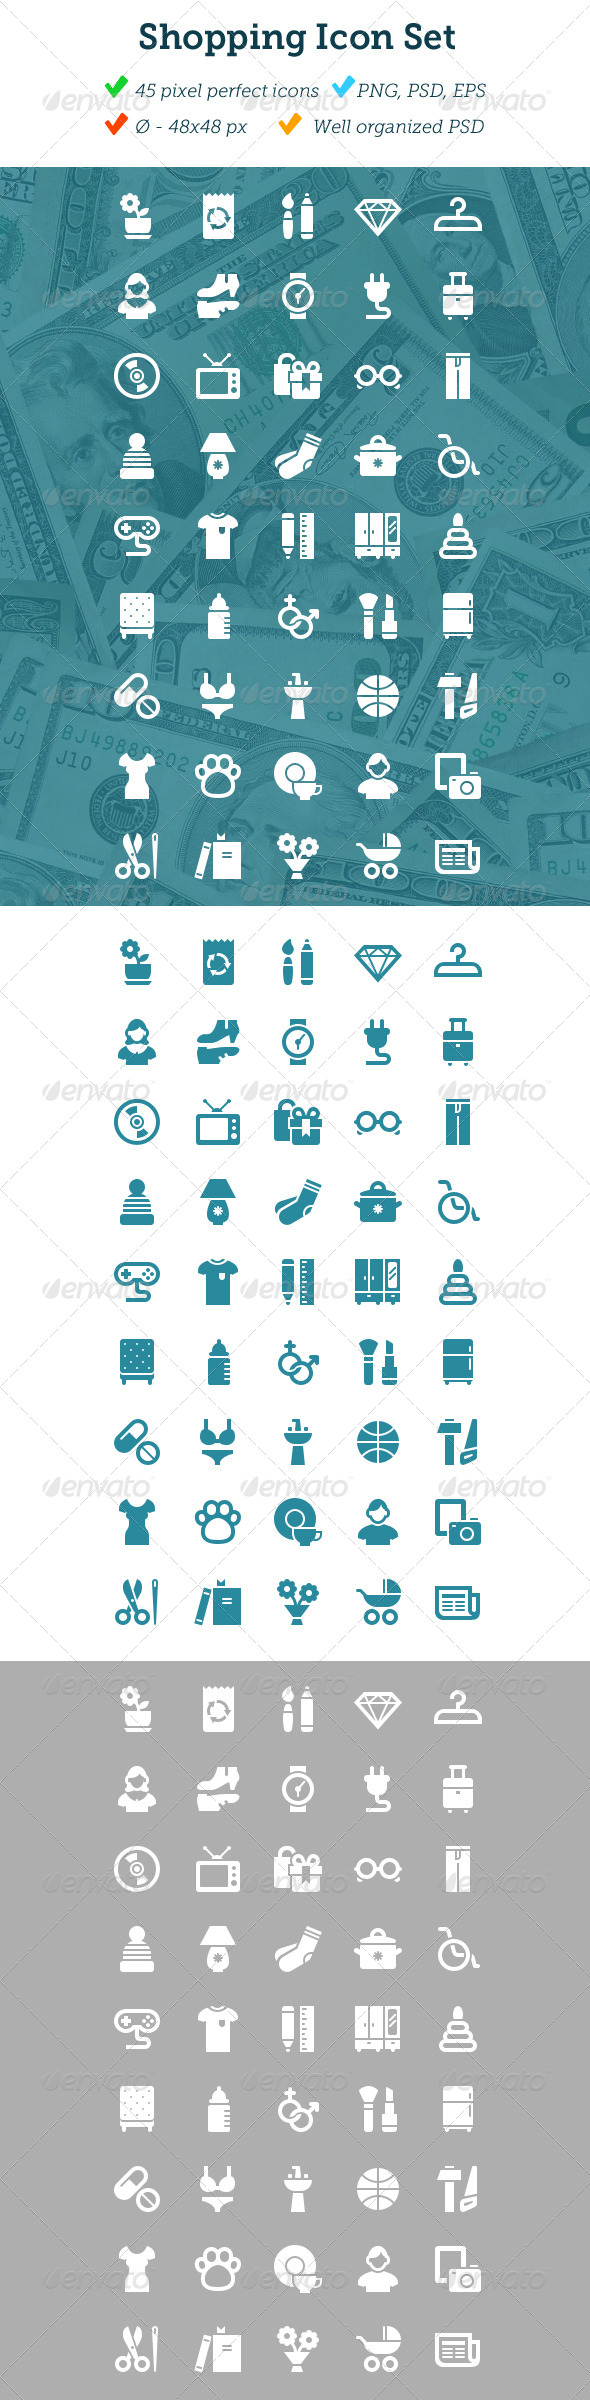 GraphicRiver Shopping Icon Set 4174405 Created: 7